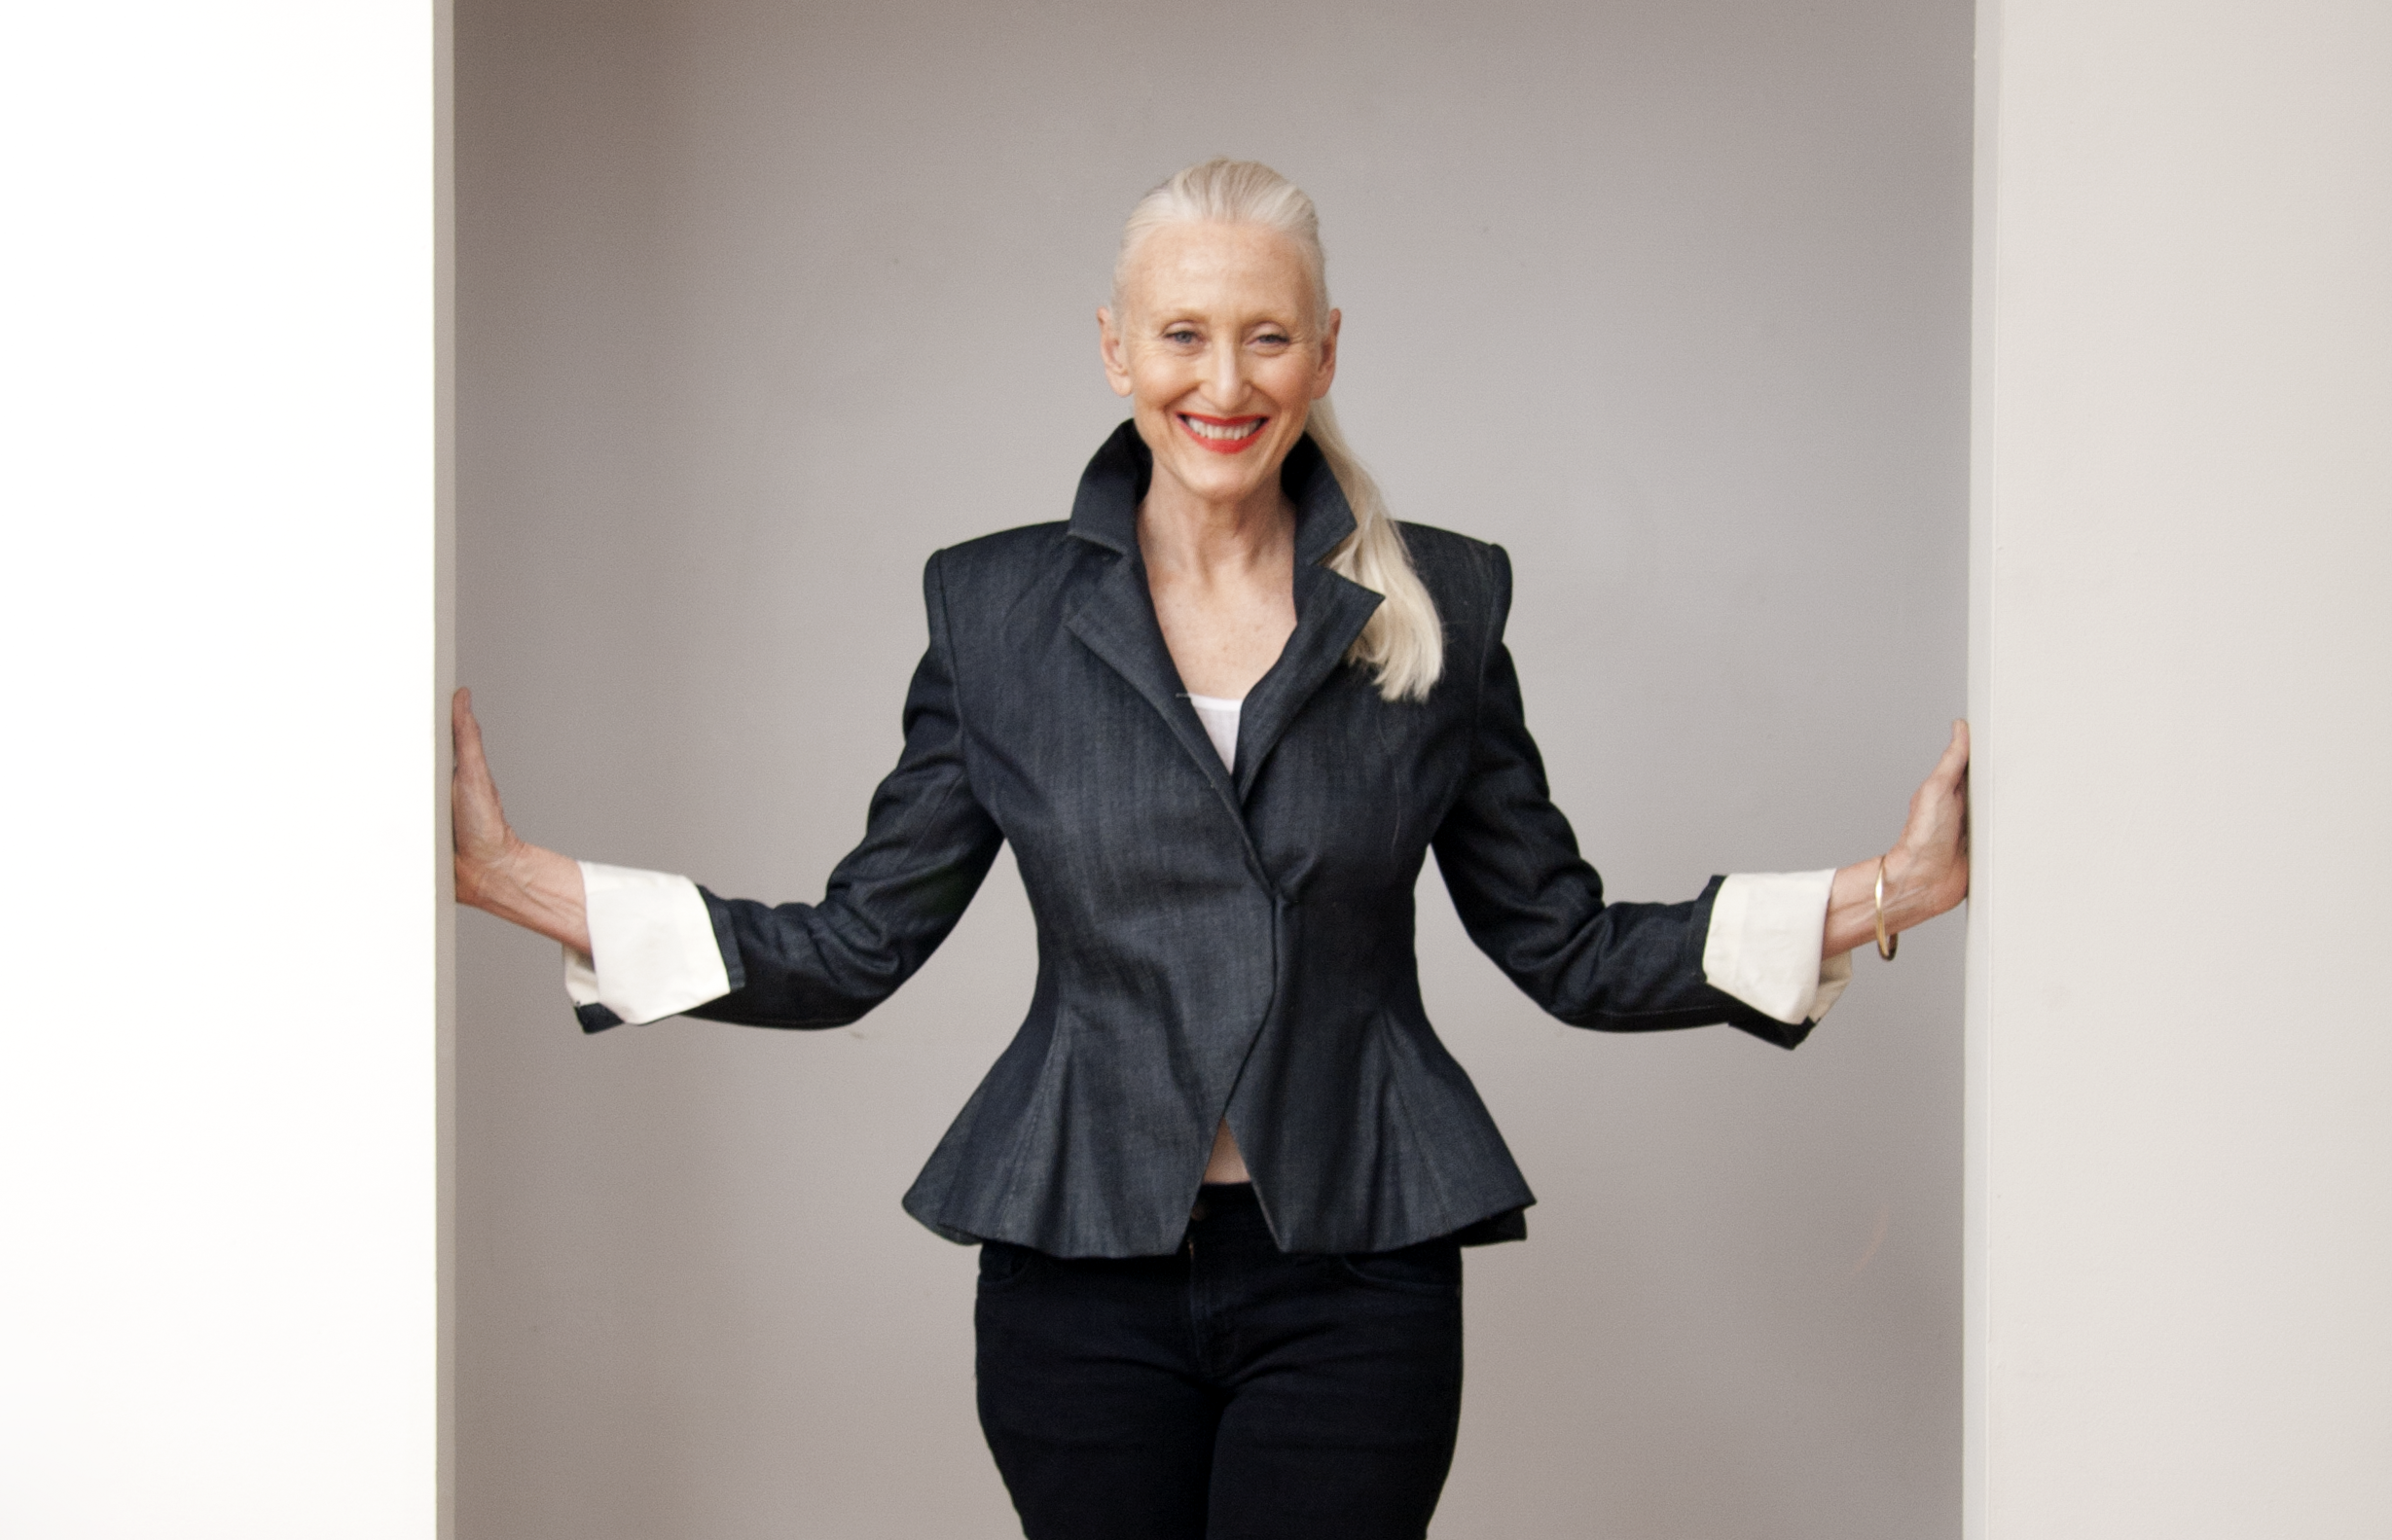 Fashion model Gillean McLeod, now 63, says her confidence continues to grow